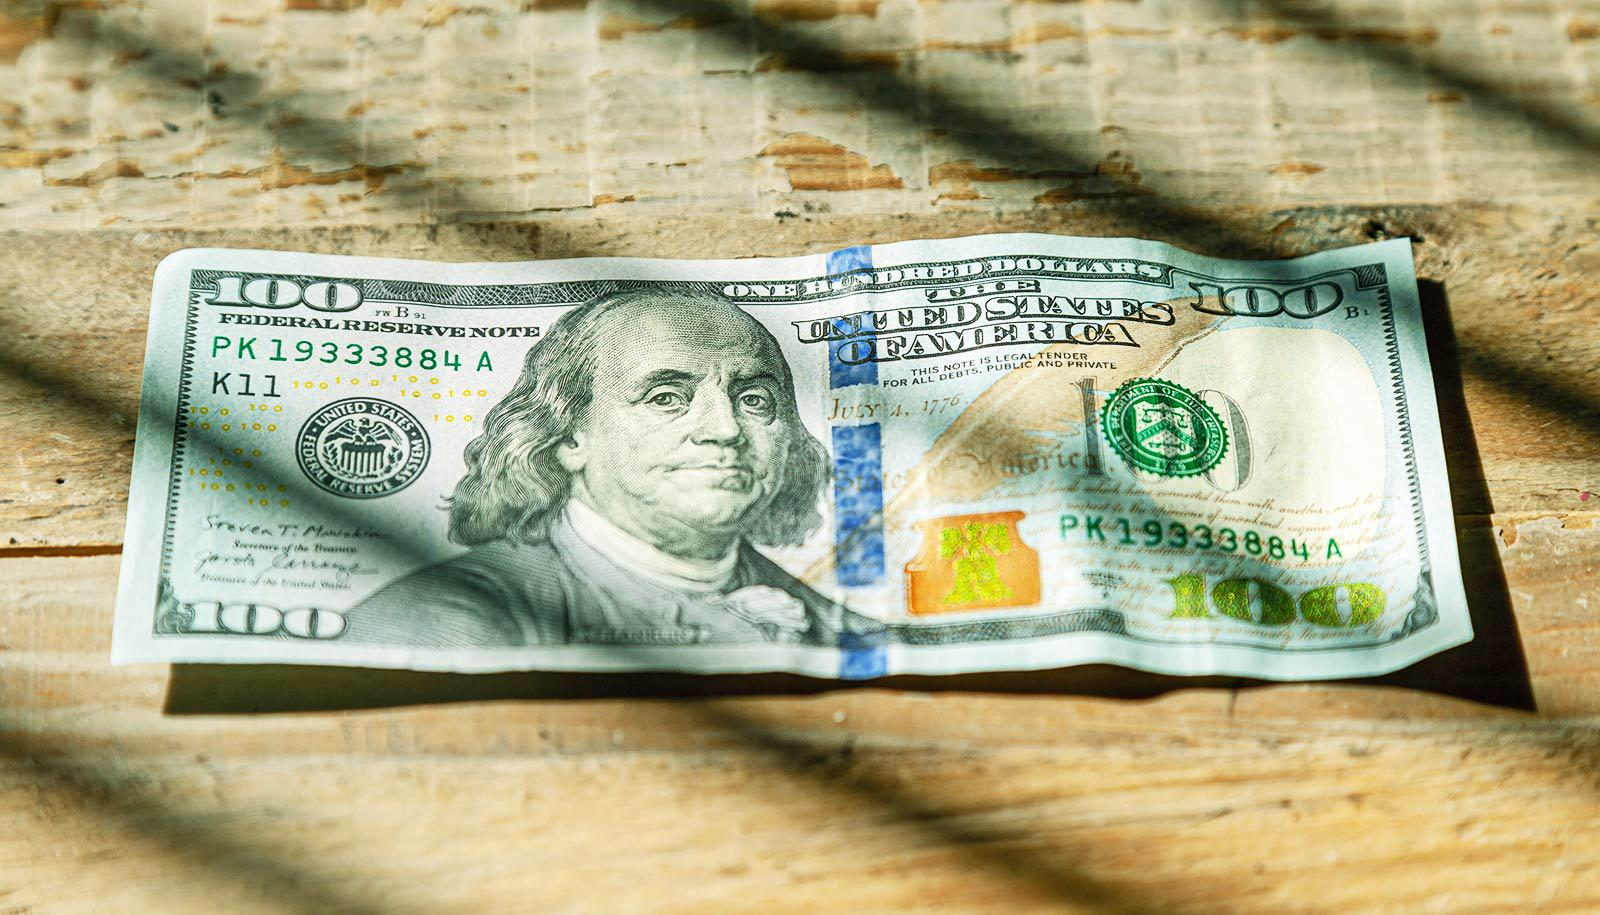 $100 bill on wood surface